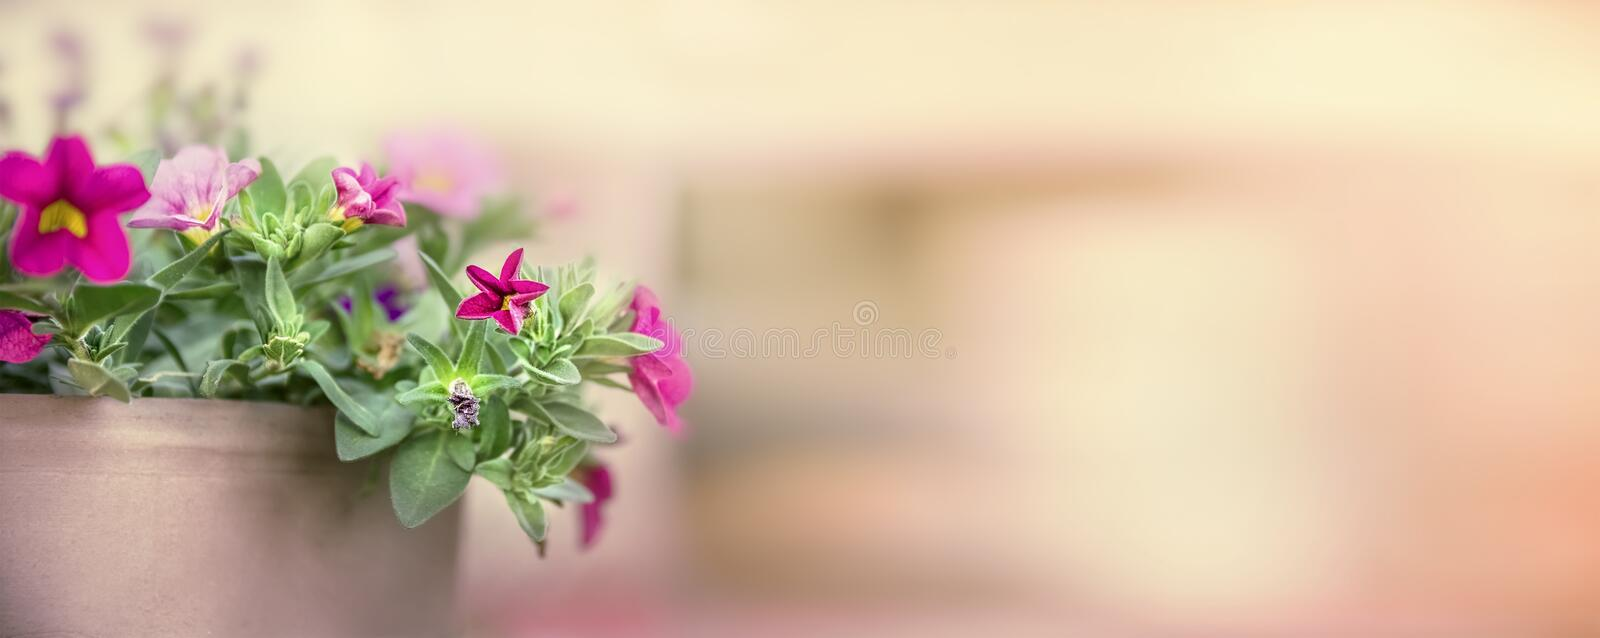 Pretty petunia in flowers pot on blurred nature background, banner for website. Toned royalty free stock photos